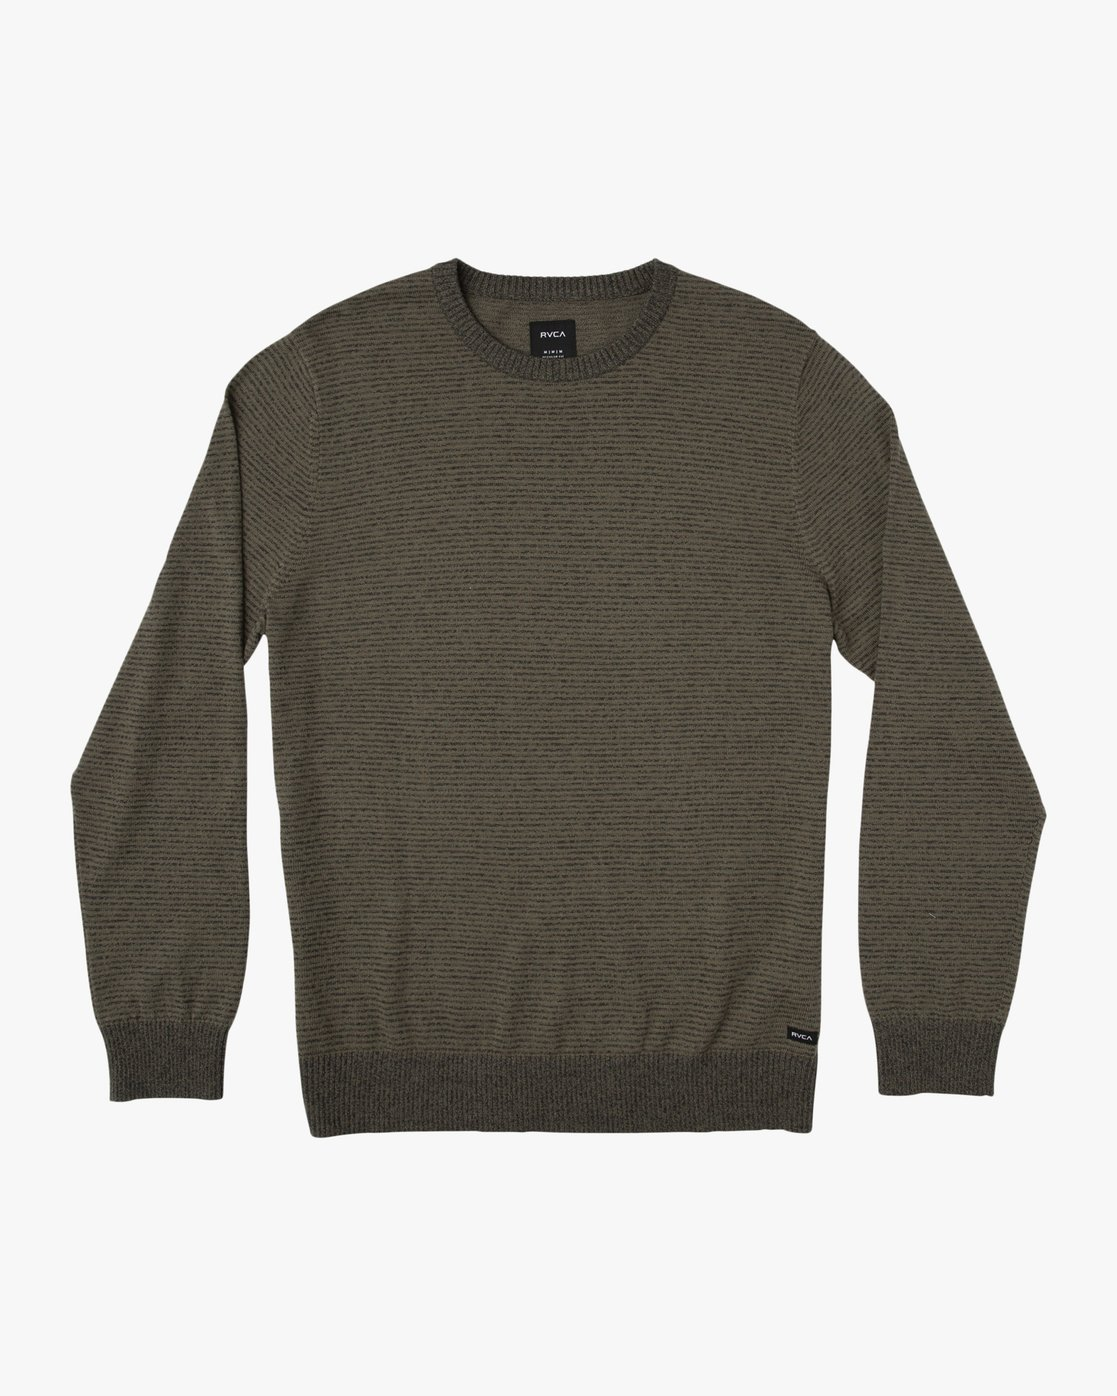 0 Layback Striped Sweater Grey MV42SRLB RVCA